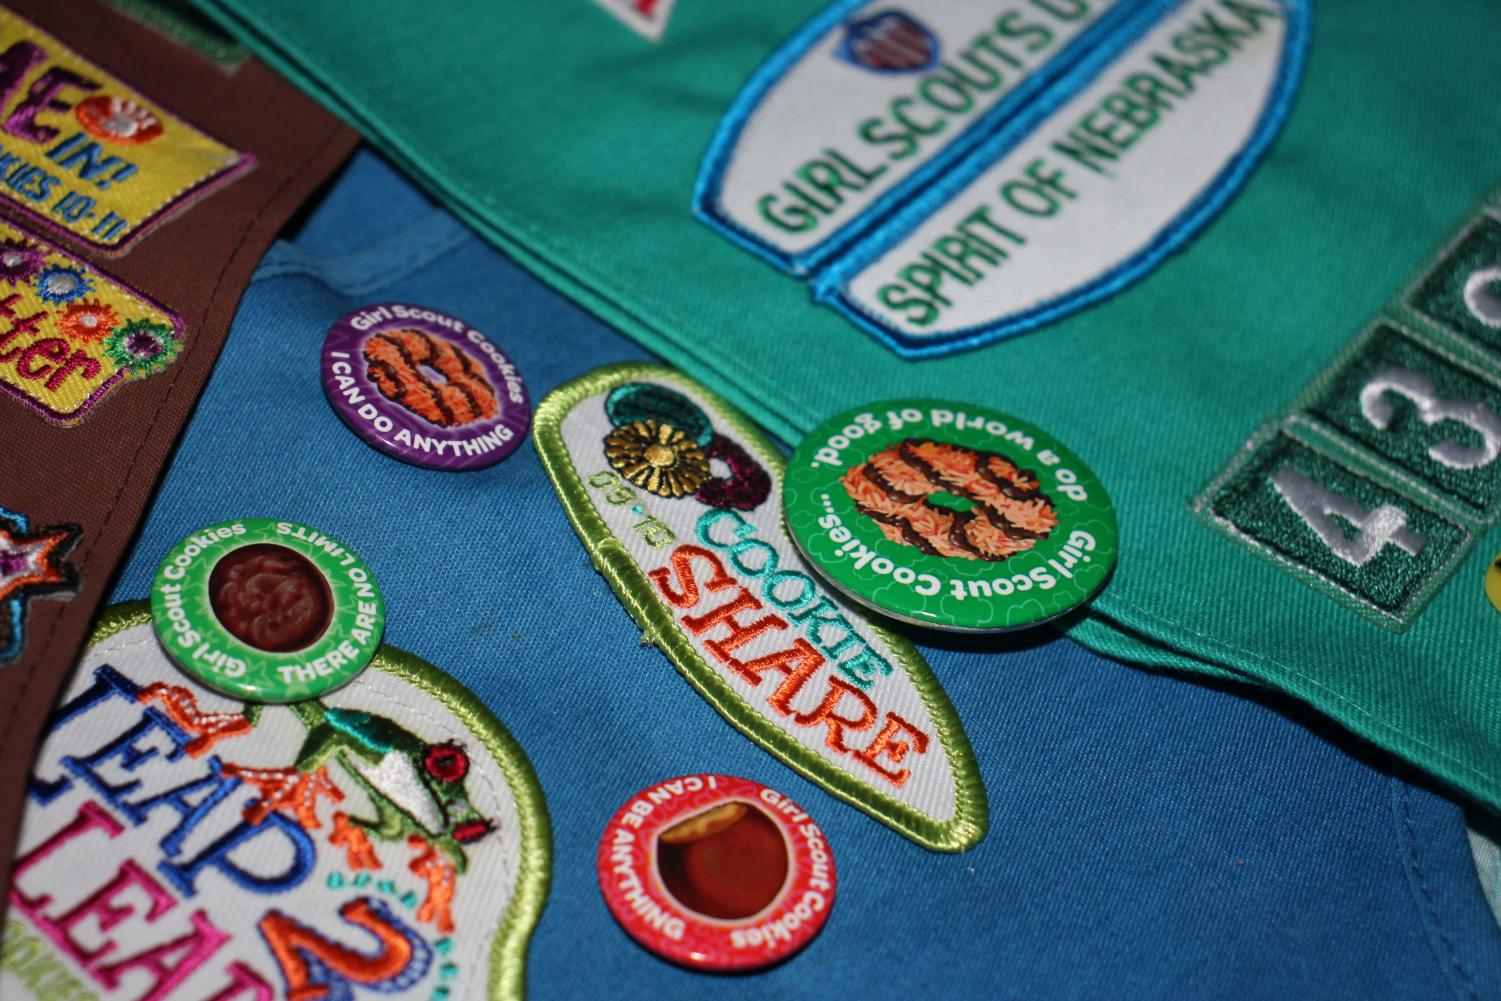 Some Girl Scouts like to be a part of troops that do many activities in order to fill their sashes or vests with badges. Badges were gained after the girls learned something new or after they had finished a new activity that benefits a large group of people.